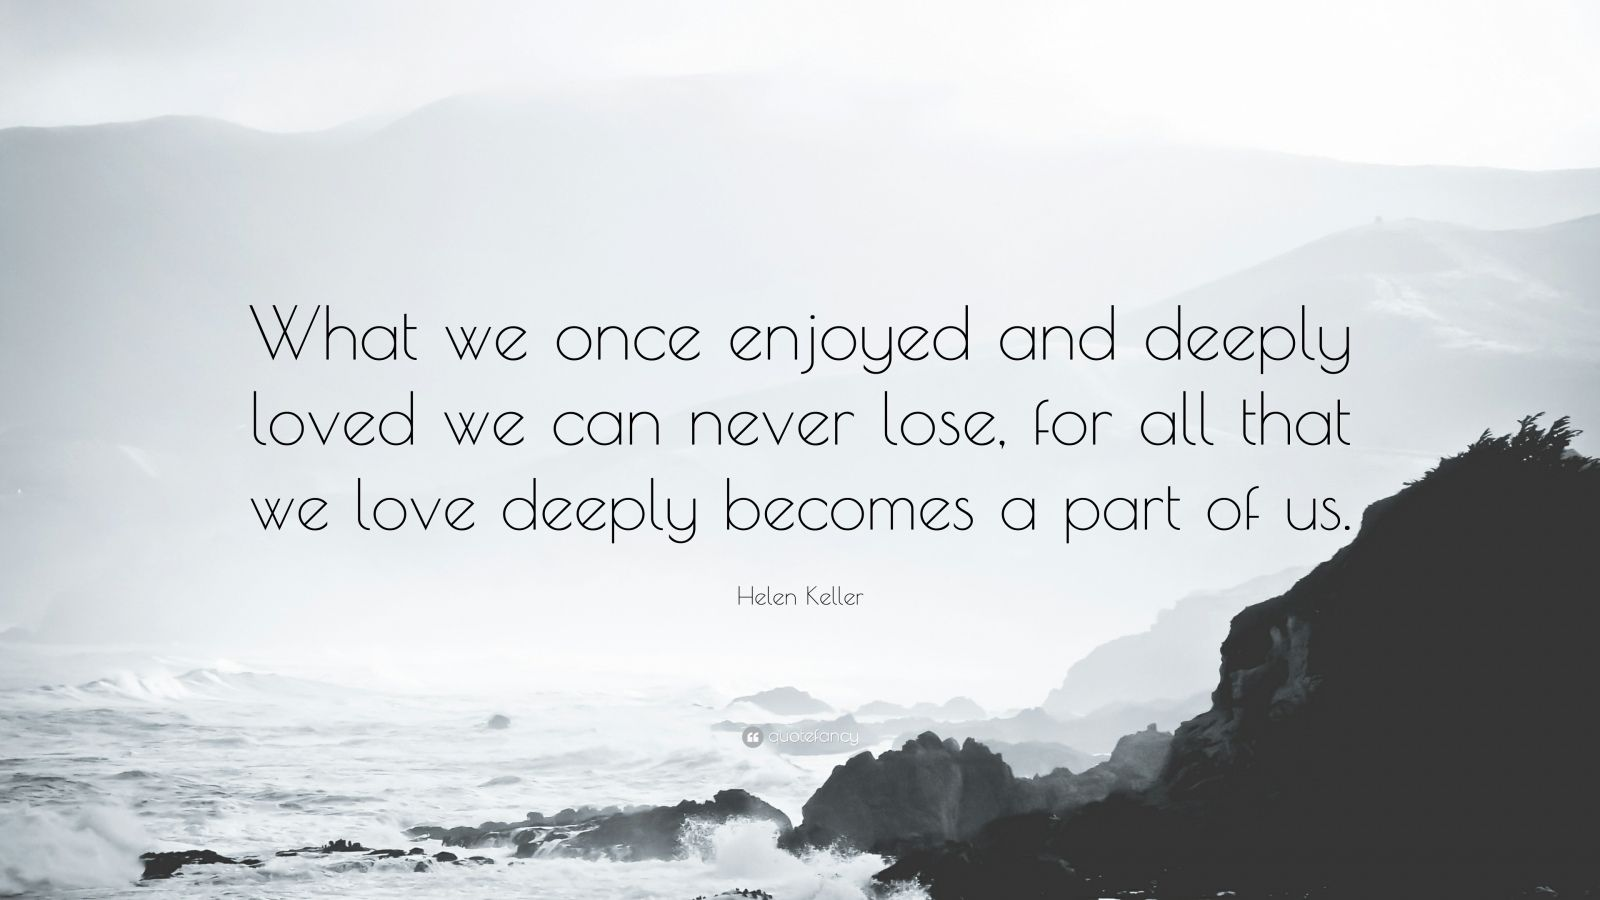 Vengeance Quotes Wallpapers Helen Keller Quote What We Once Enjoyed And Deeply Loved